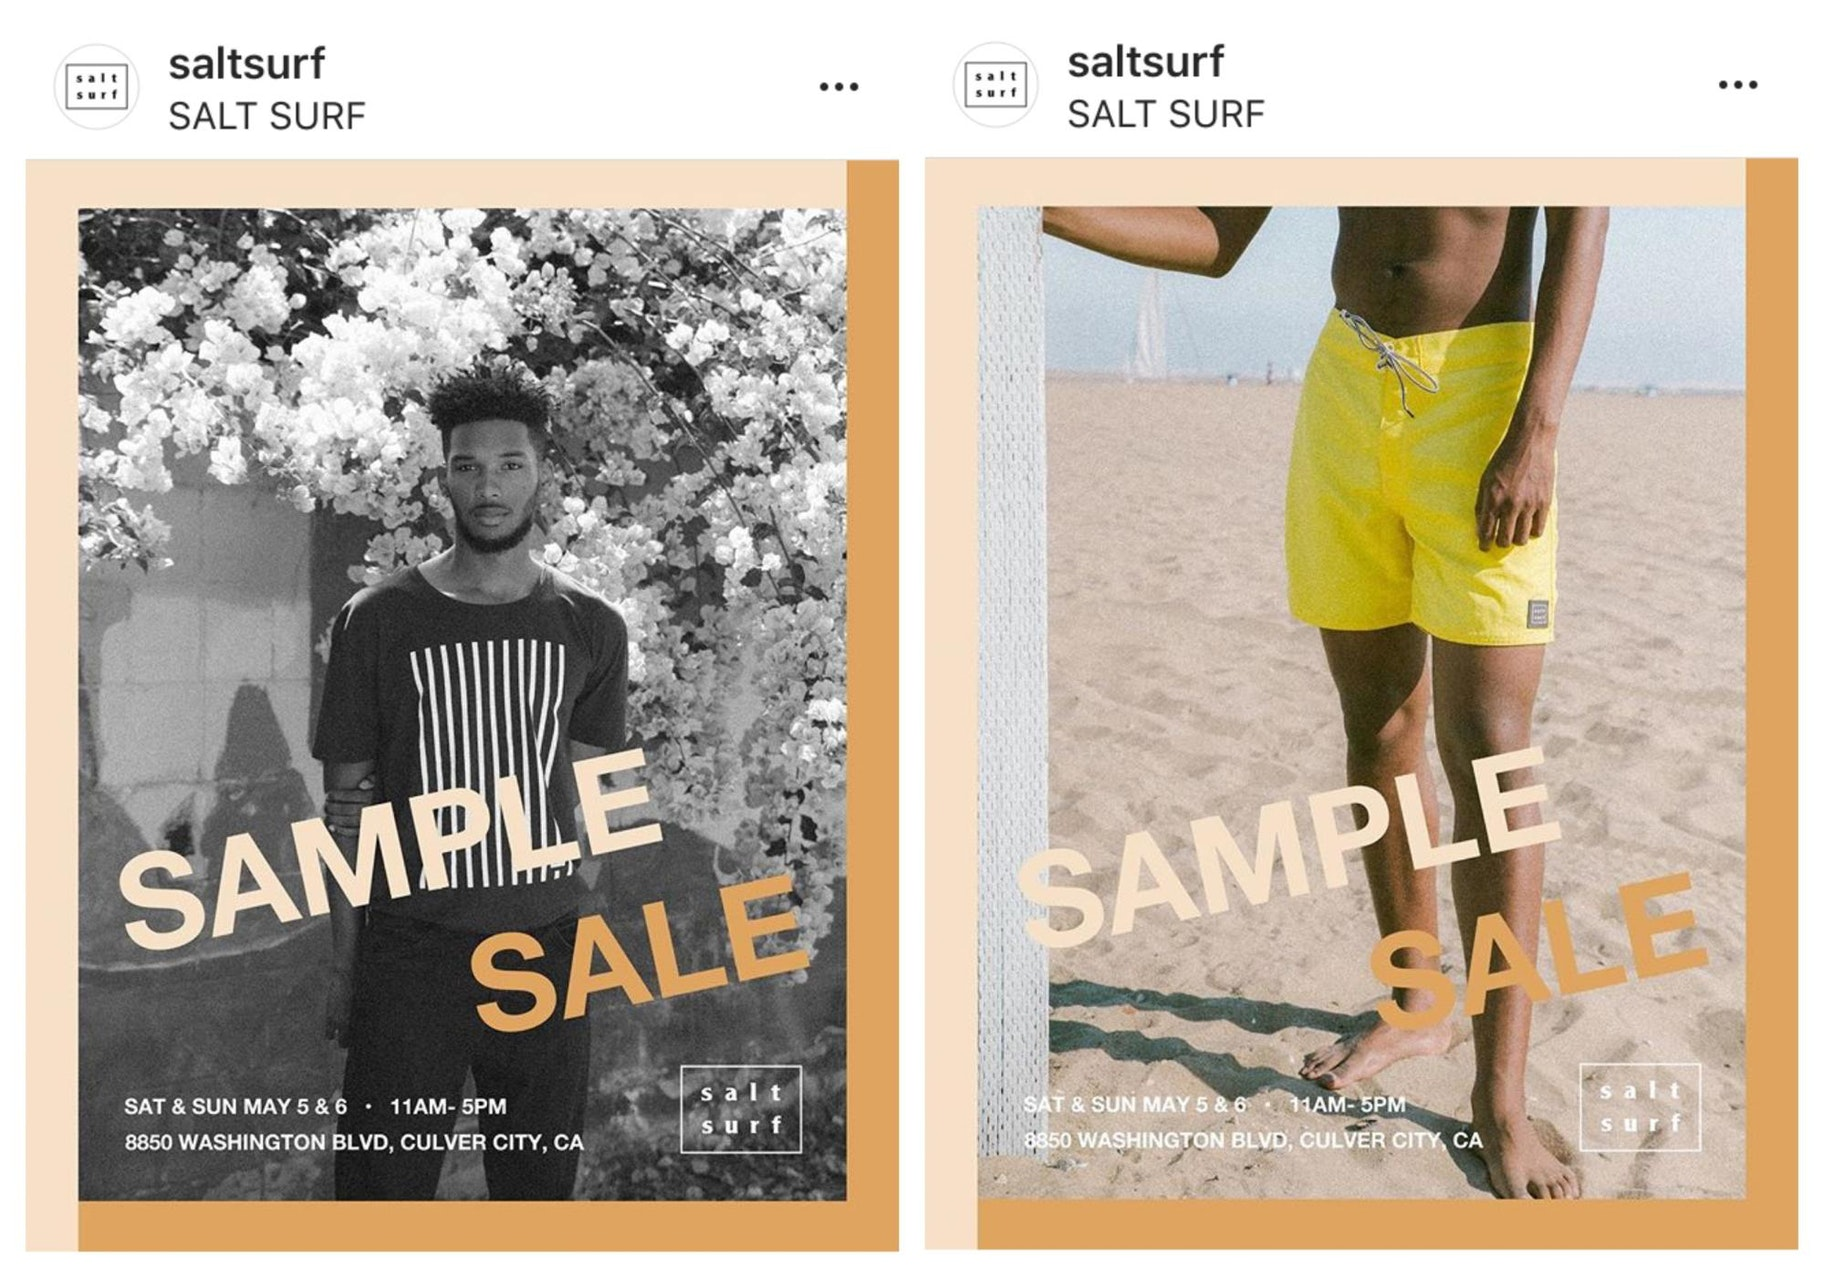 Salt Suf Instagram Templates